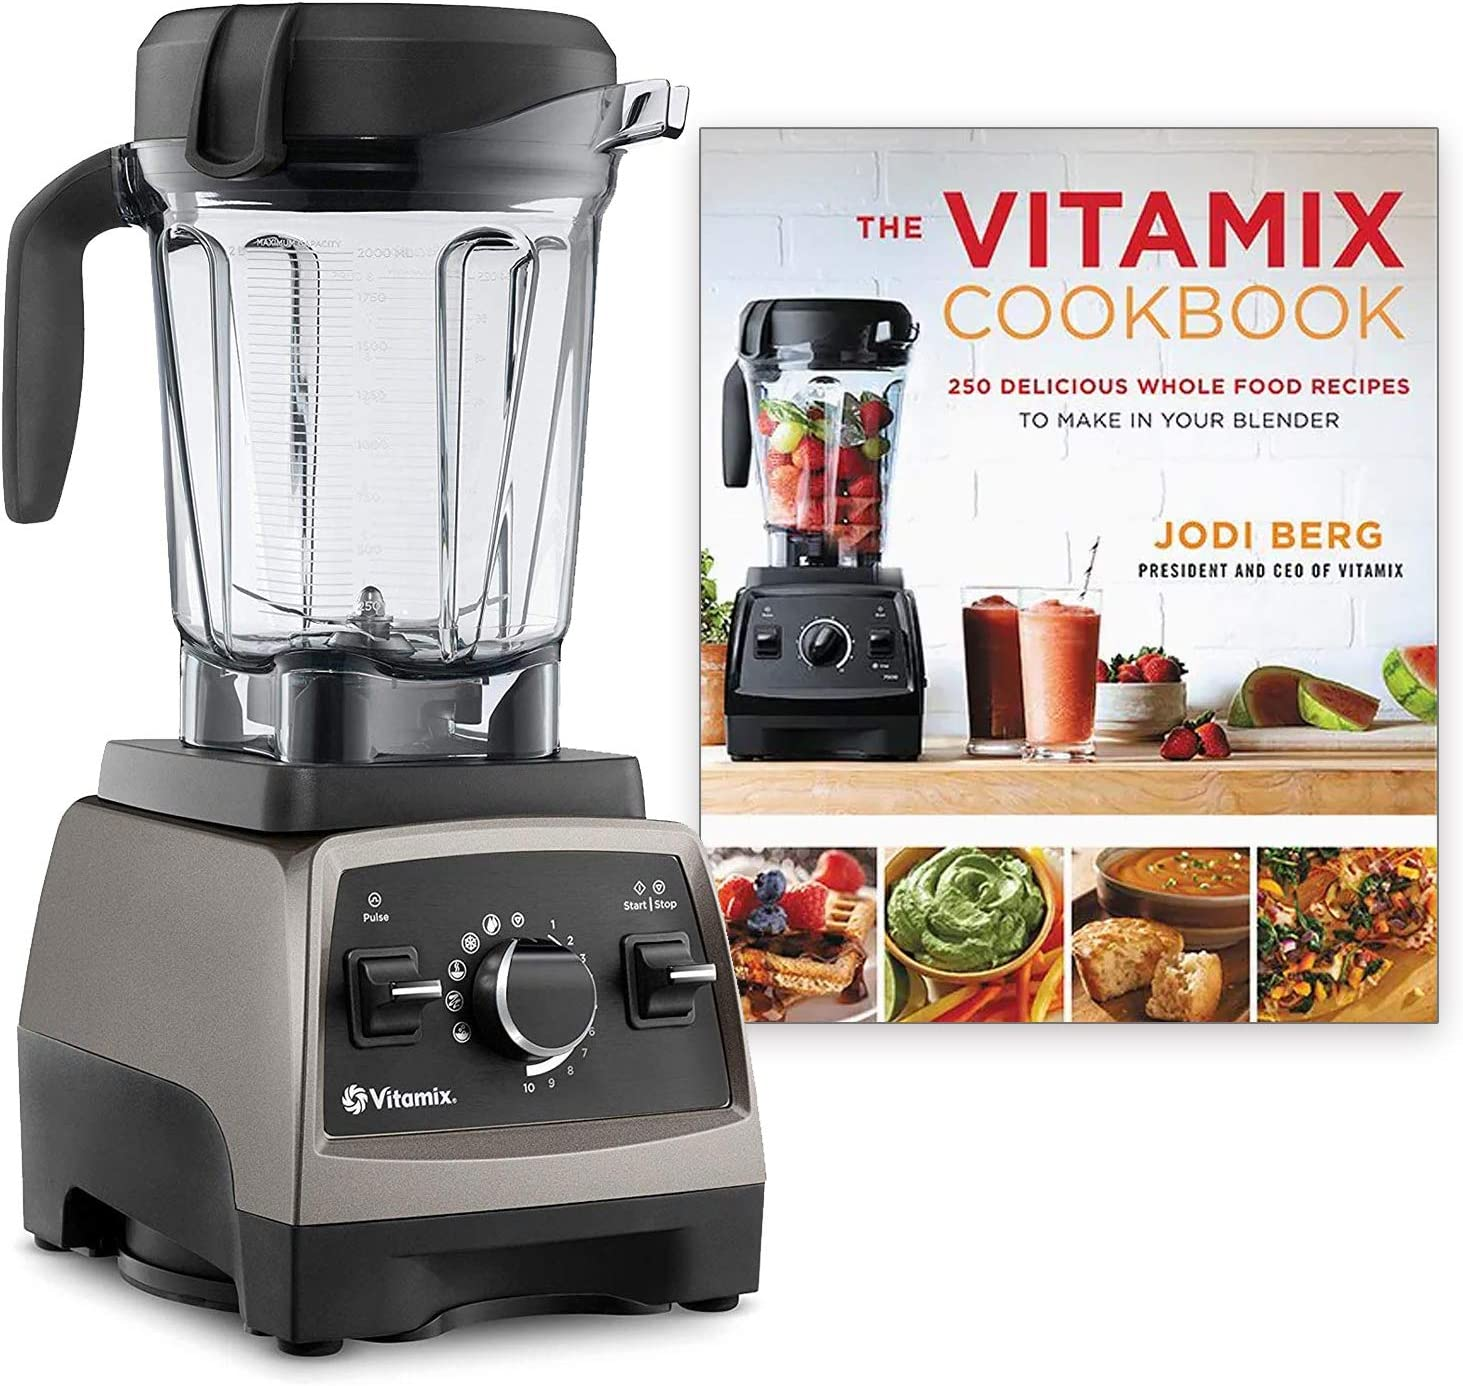 Vitamix Pro 750 Heritage Series, Professional-Grade, 64 oz. Low-Profile Container Bundle with The Vitamix Cookbook - 250 Delicious Whole Food Recipes (Pearl Gray)